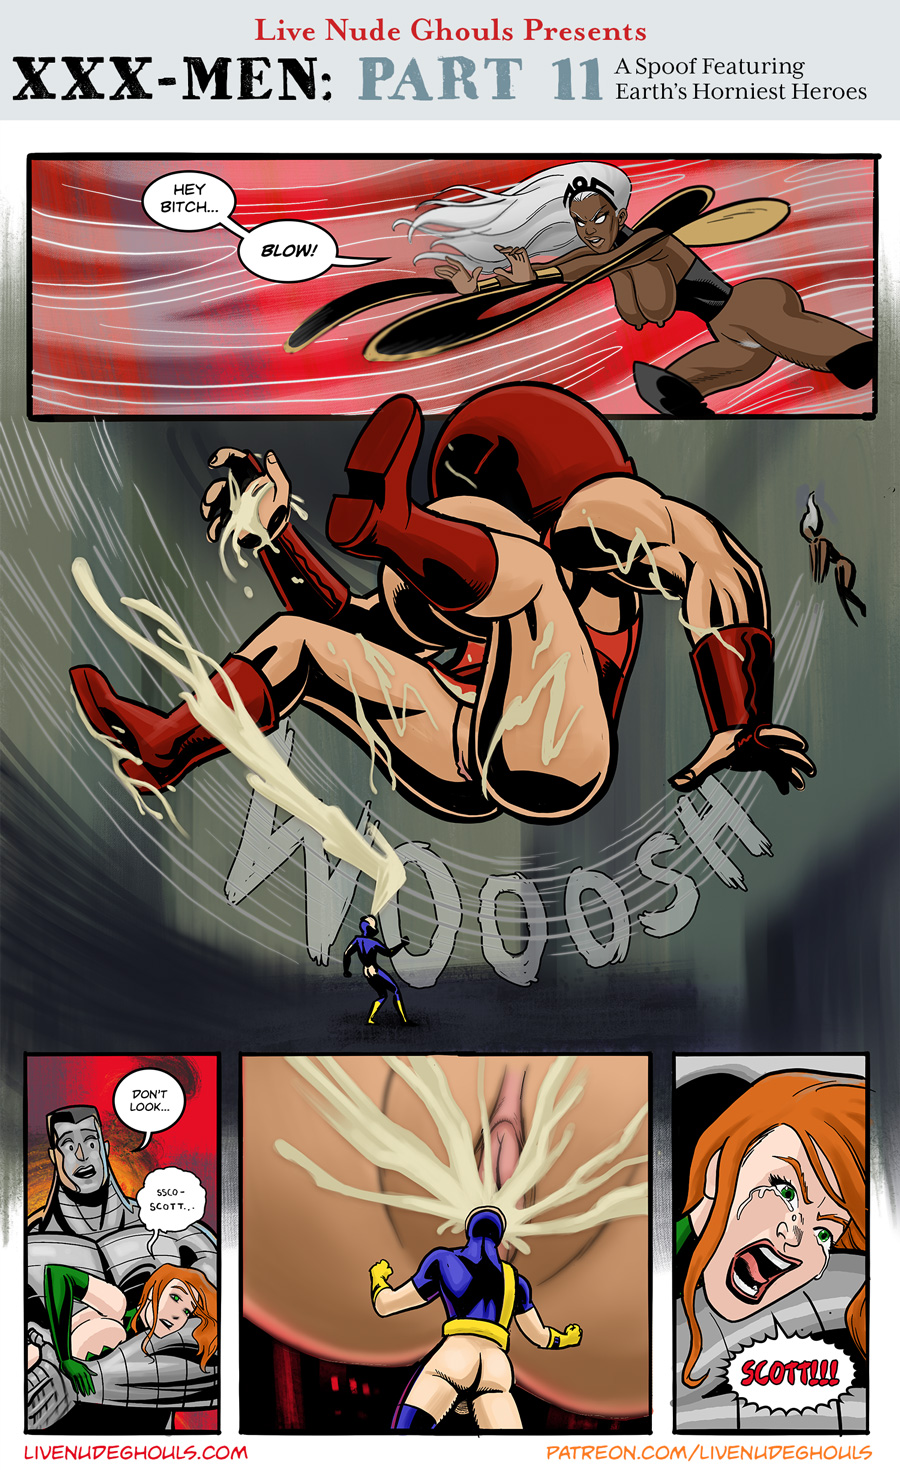 XXX-Men Page 11 - Storm sends Juggsernaut flying with a powerful gust of wind. Jean Grey screams out in Horror as Cyclops faces unavoidable disaster.